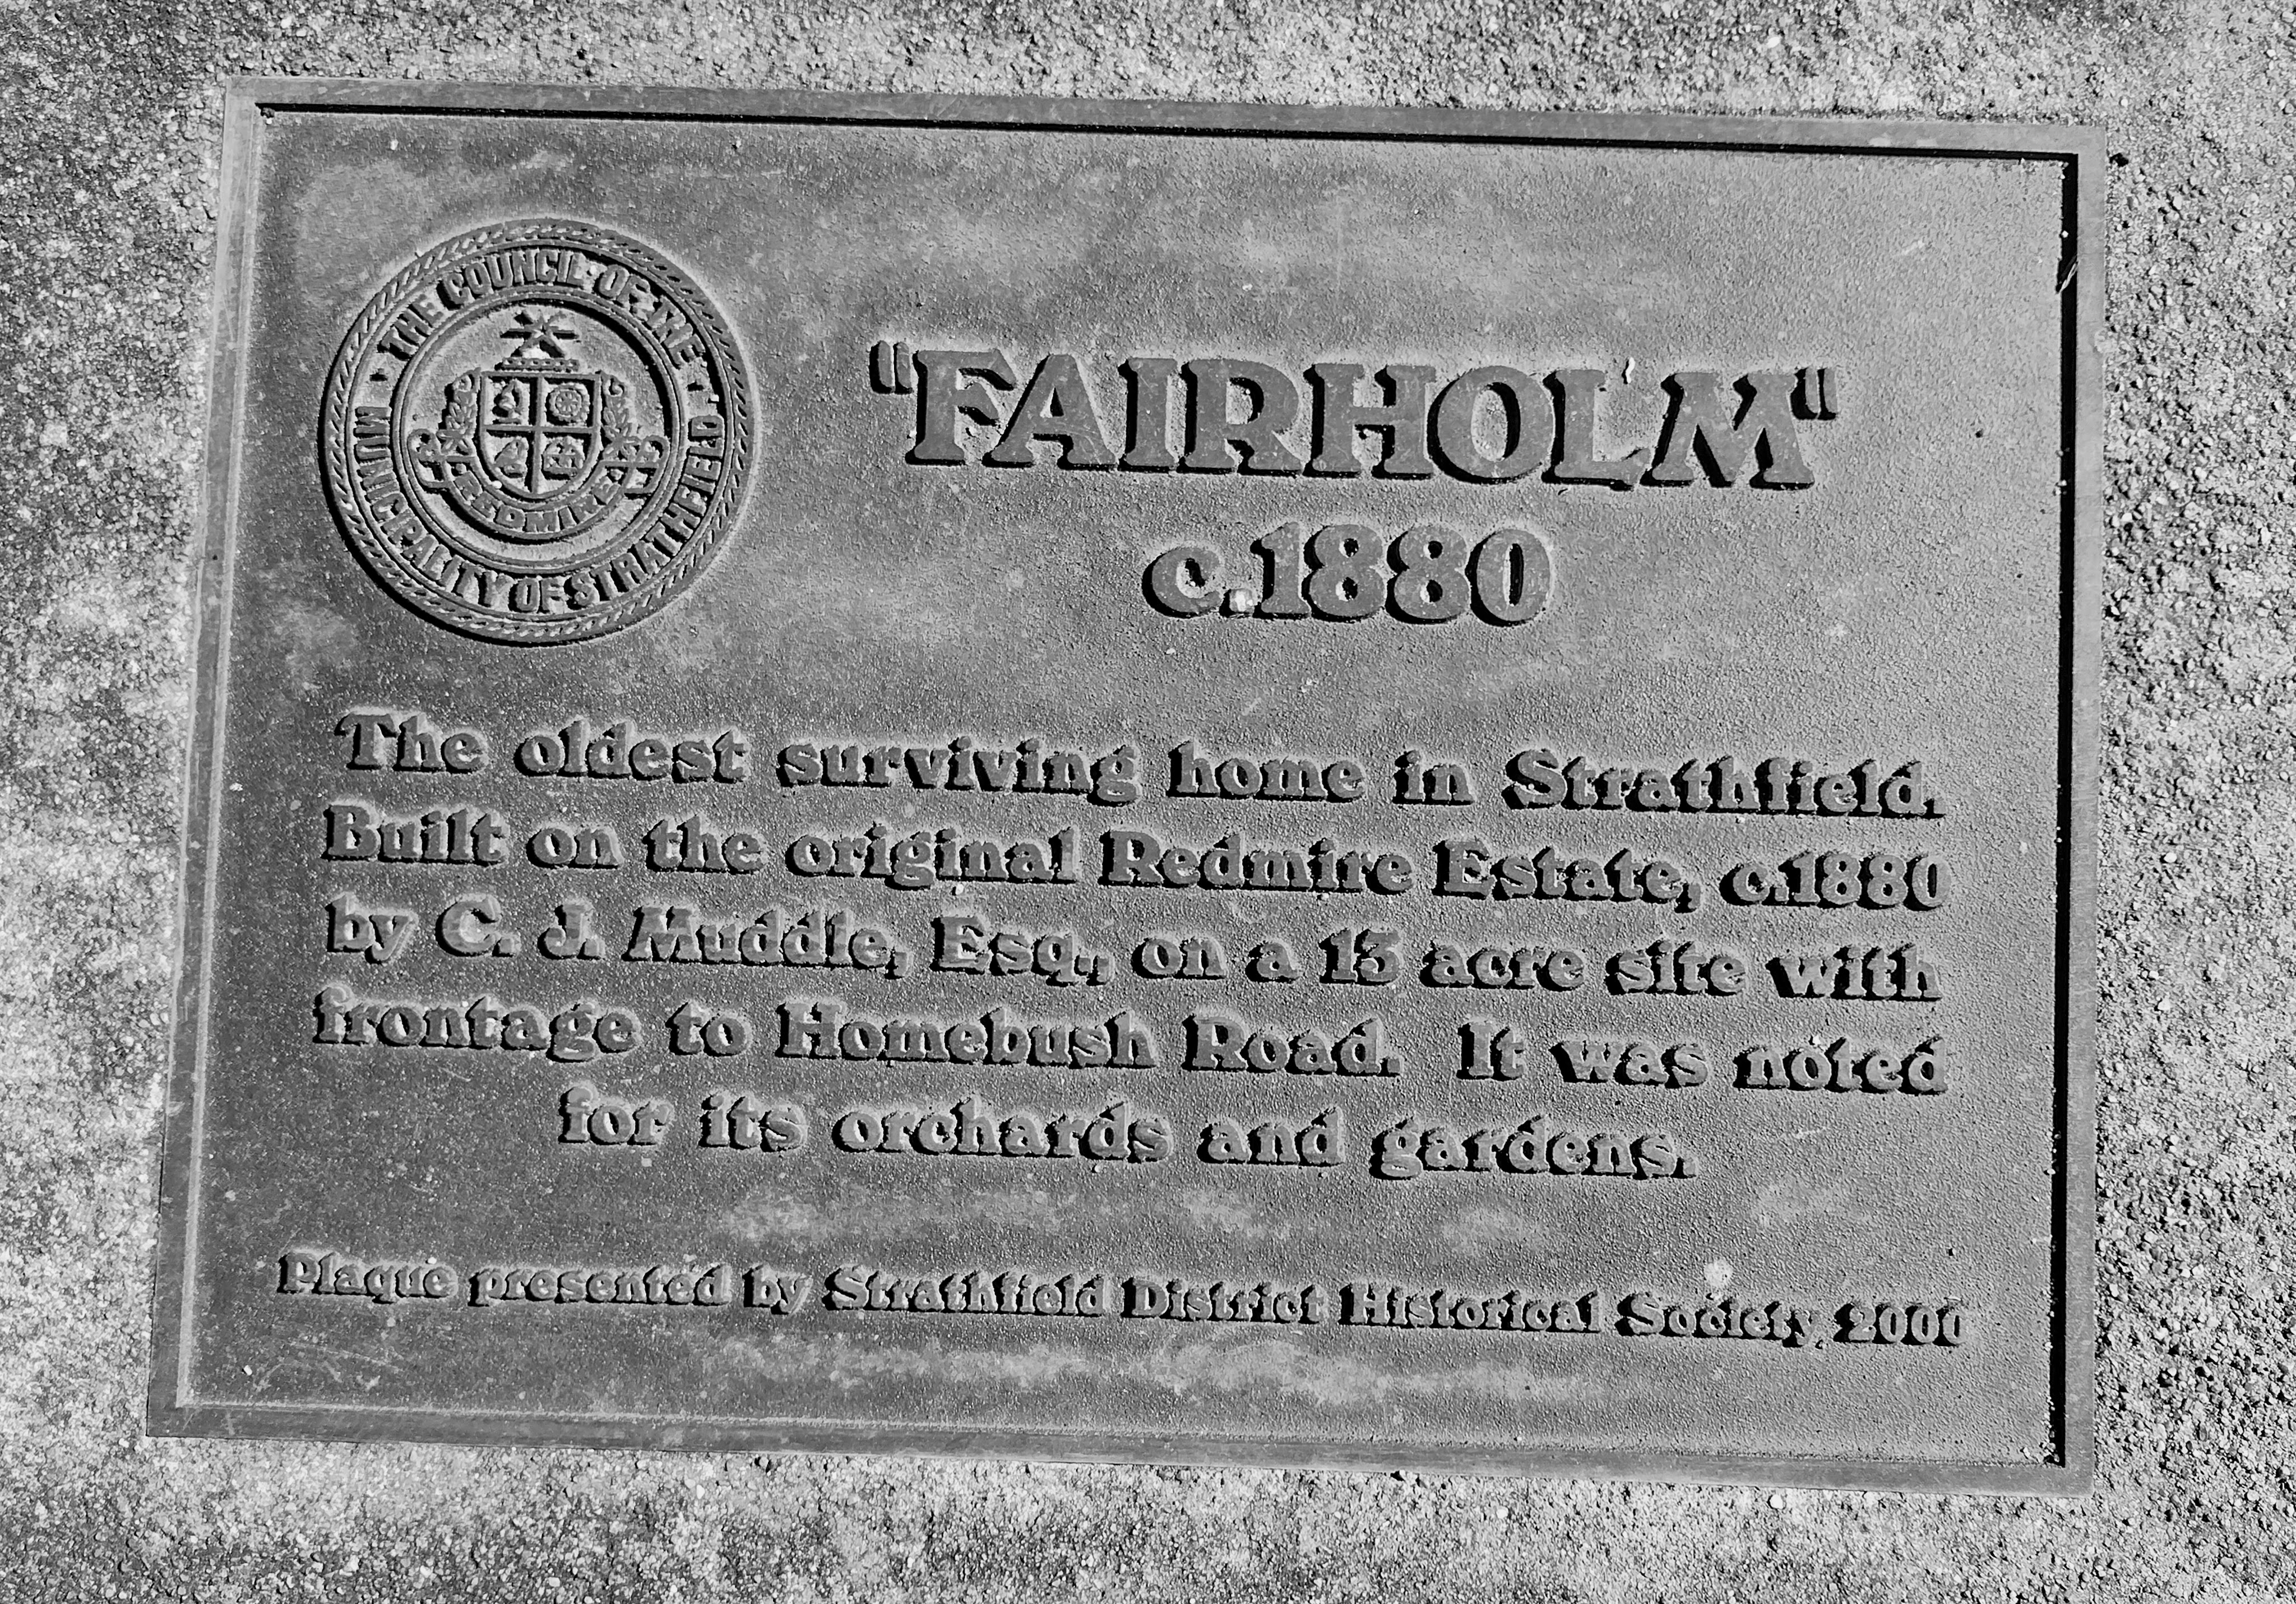 'Fairholm' brass plaque installed on naturestrip outside the former house 'Fairholm' c.1880. Erected 2000